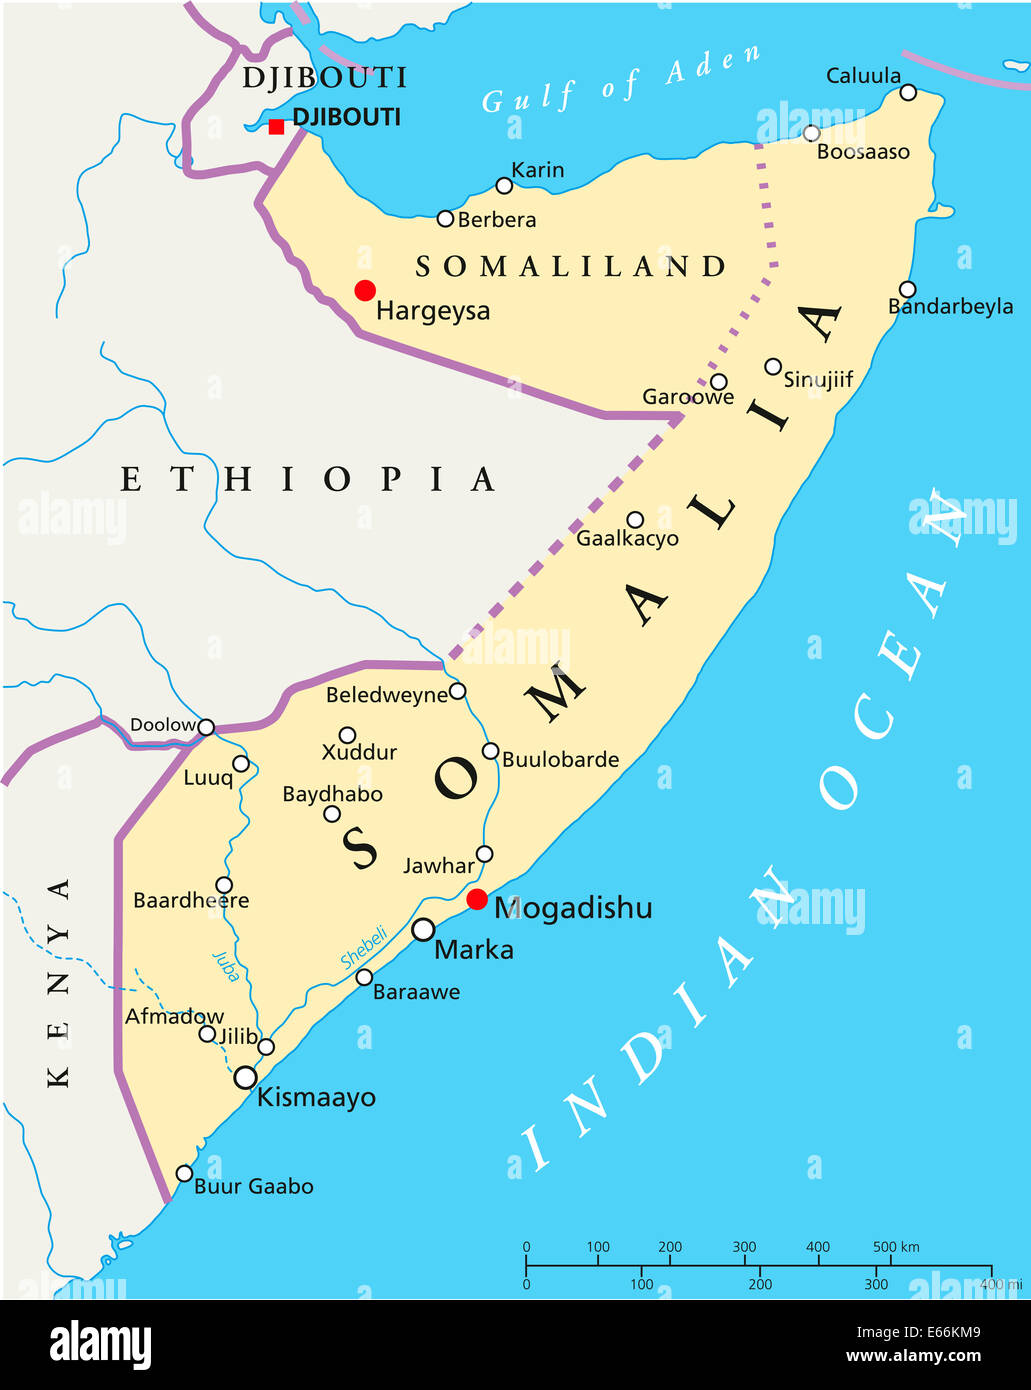 Somalia Political Map with capital Mogadishu with national borders